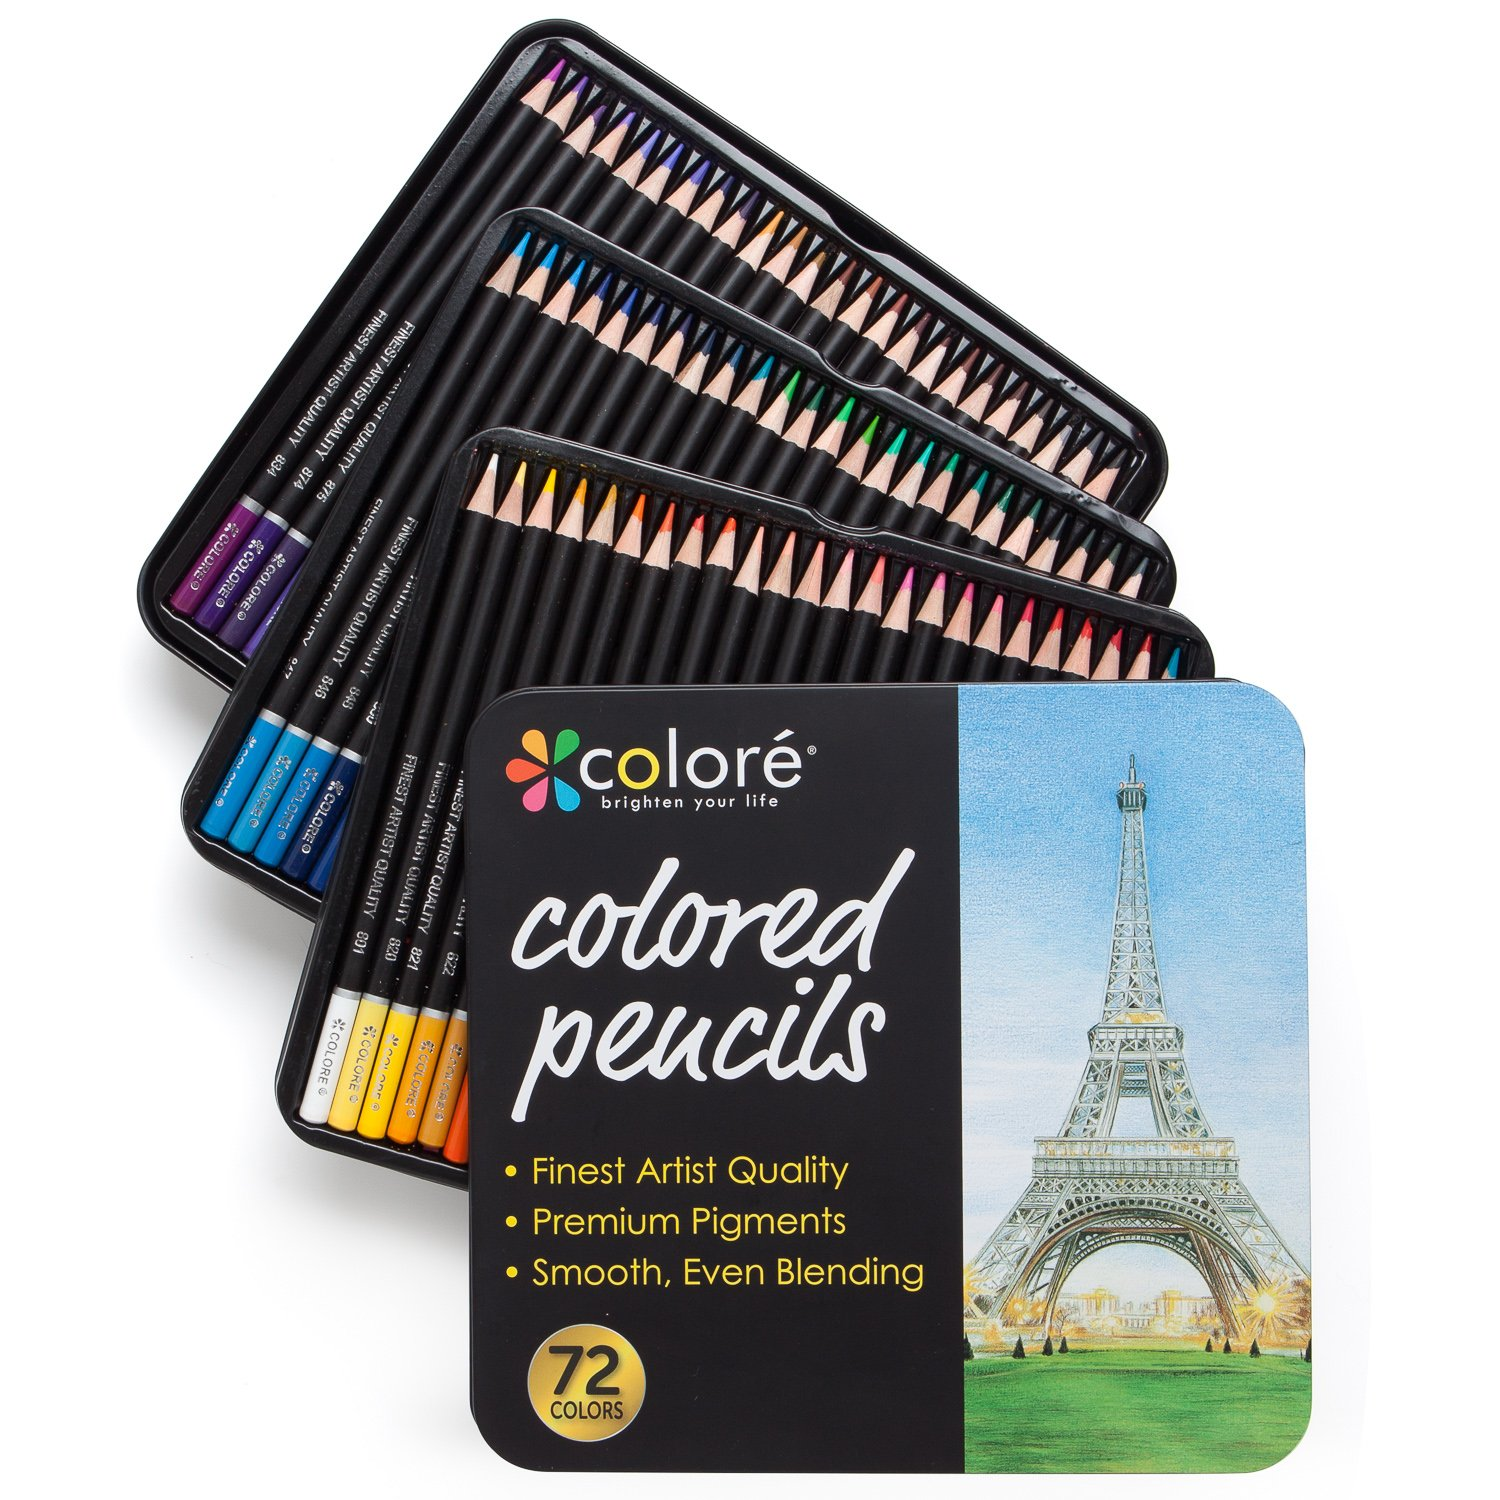 Colore Colored Pencils - 72 Premium Pre-Sharpened Color Pencil Set for Drawing Coloring Pages - Great Art School Supplies for Kids & Adults Coloring Books - 72 Colors by Colore